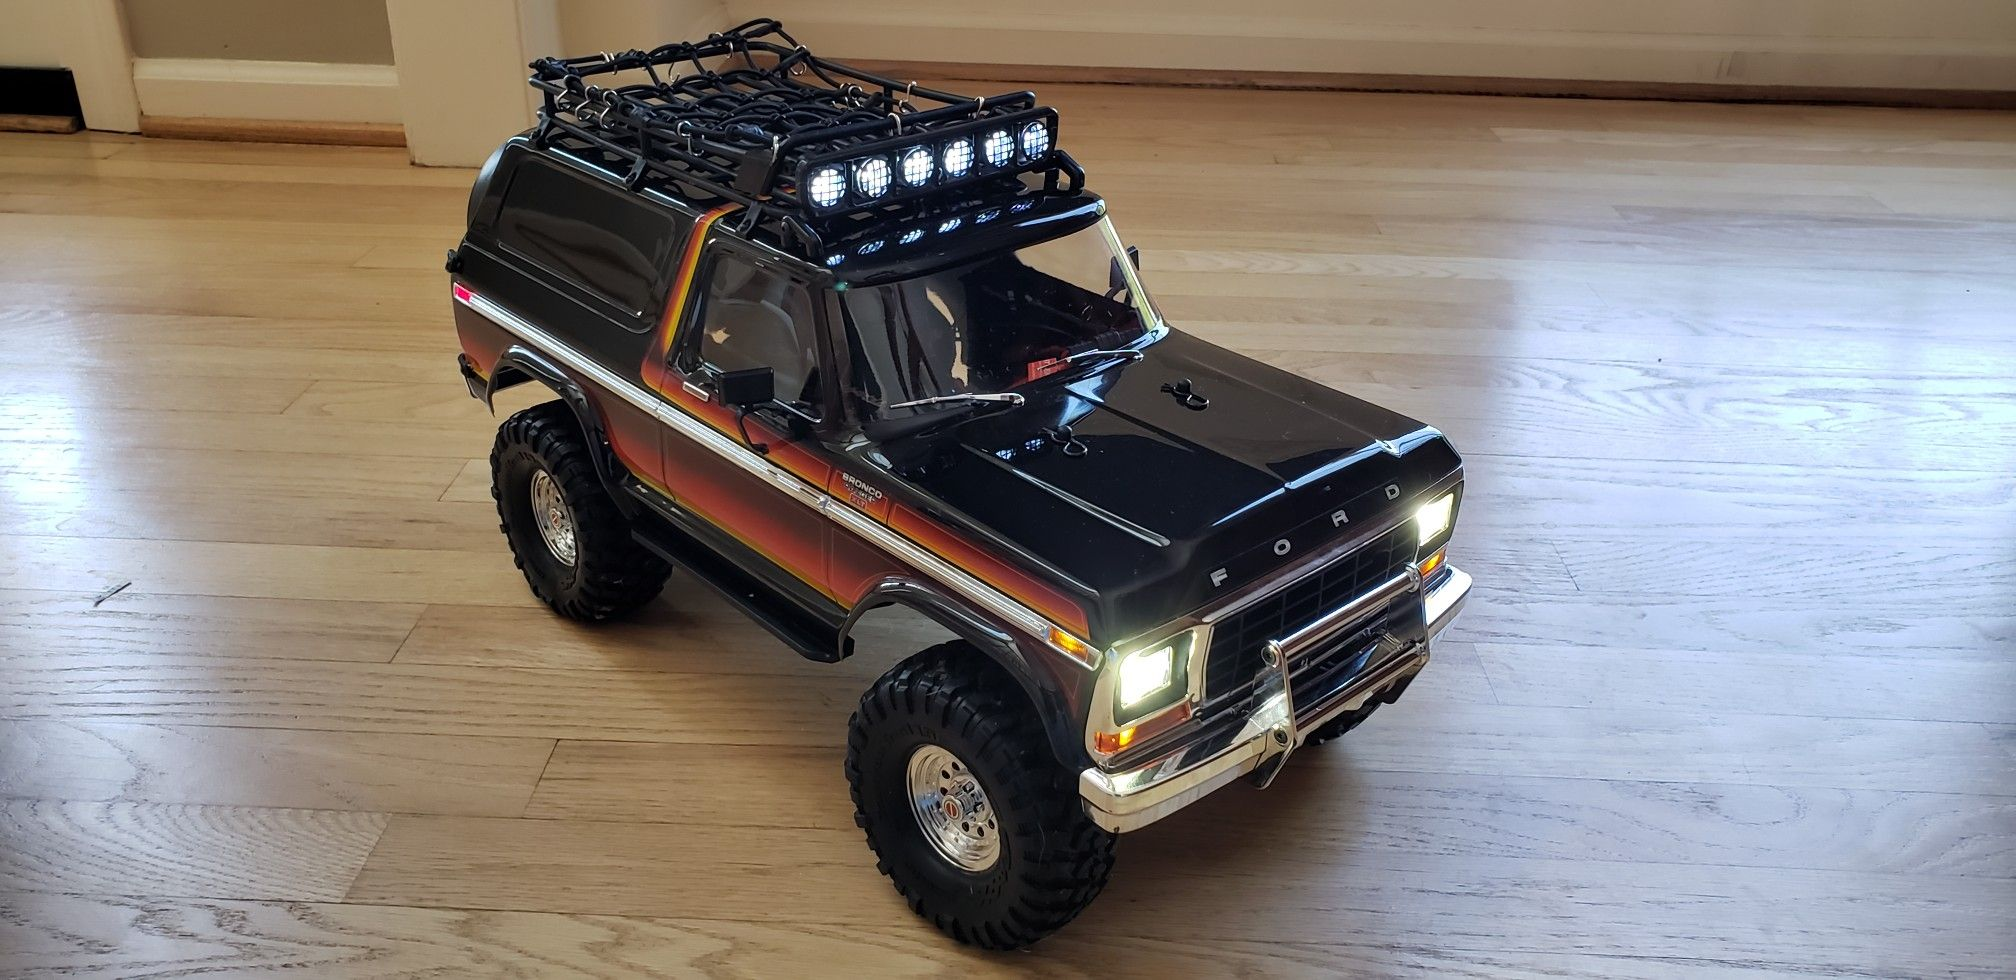 Got The Roof Rack And Cargo Net Installed Today With 1 10 Accessories On Thier Way Going Super Scale On This Traxxas Trx Ford Bronco Traxxas 1979 Ford Bronco